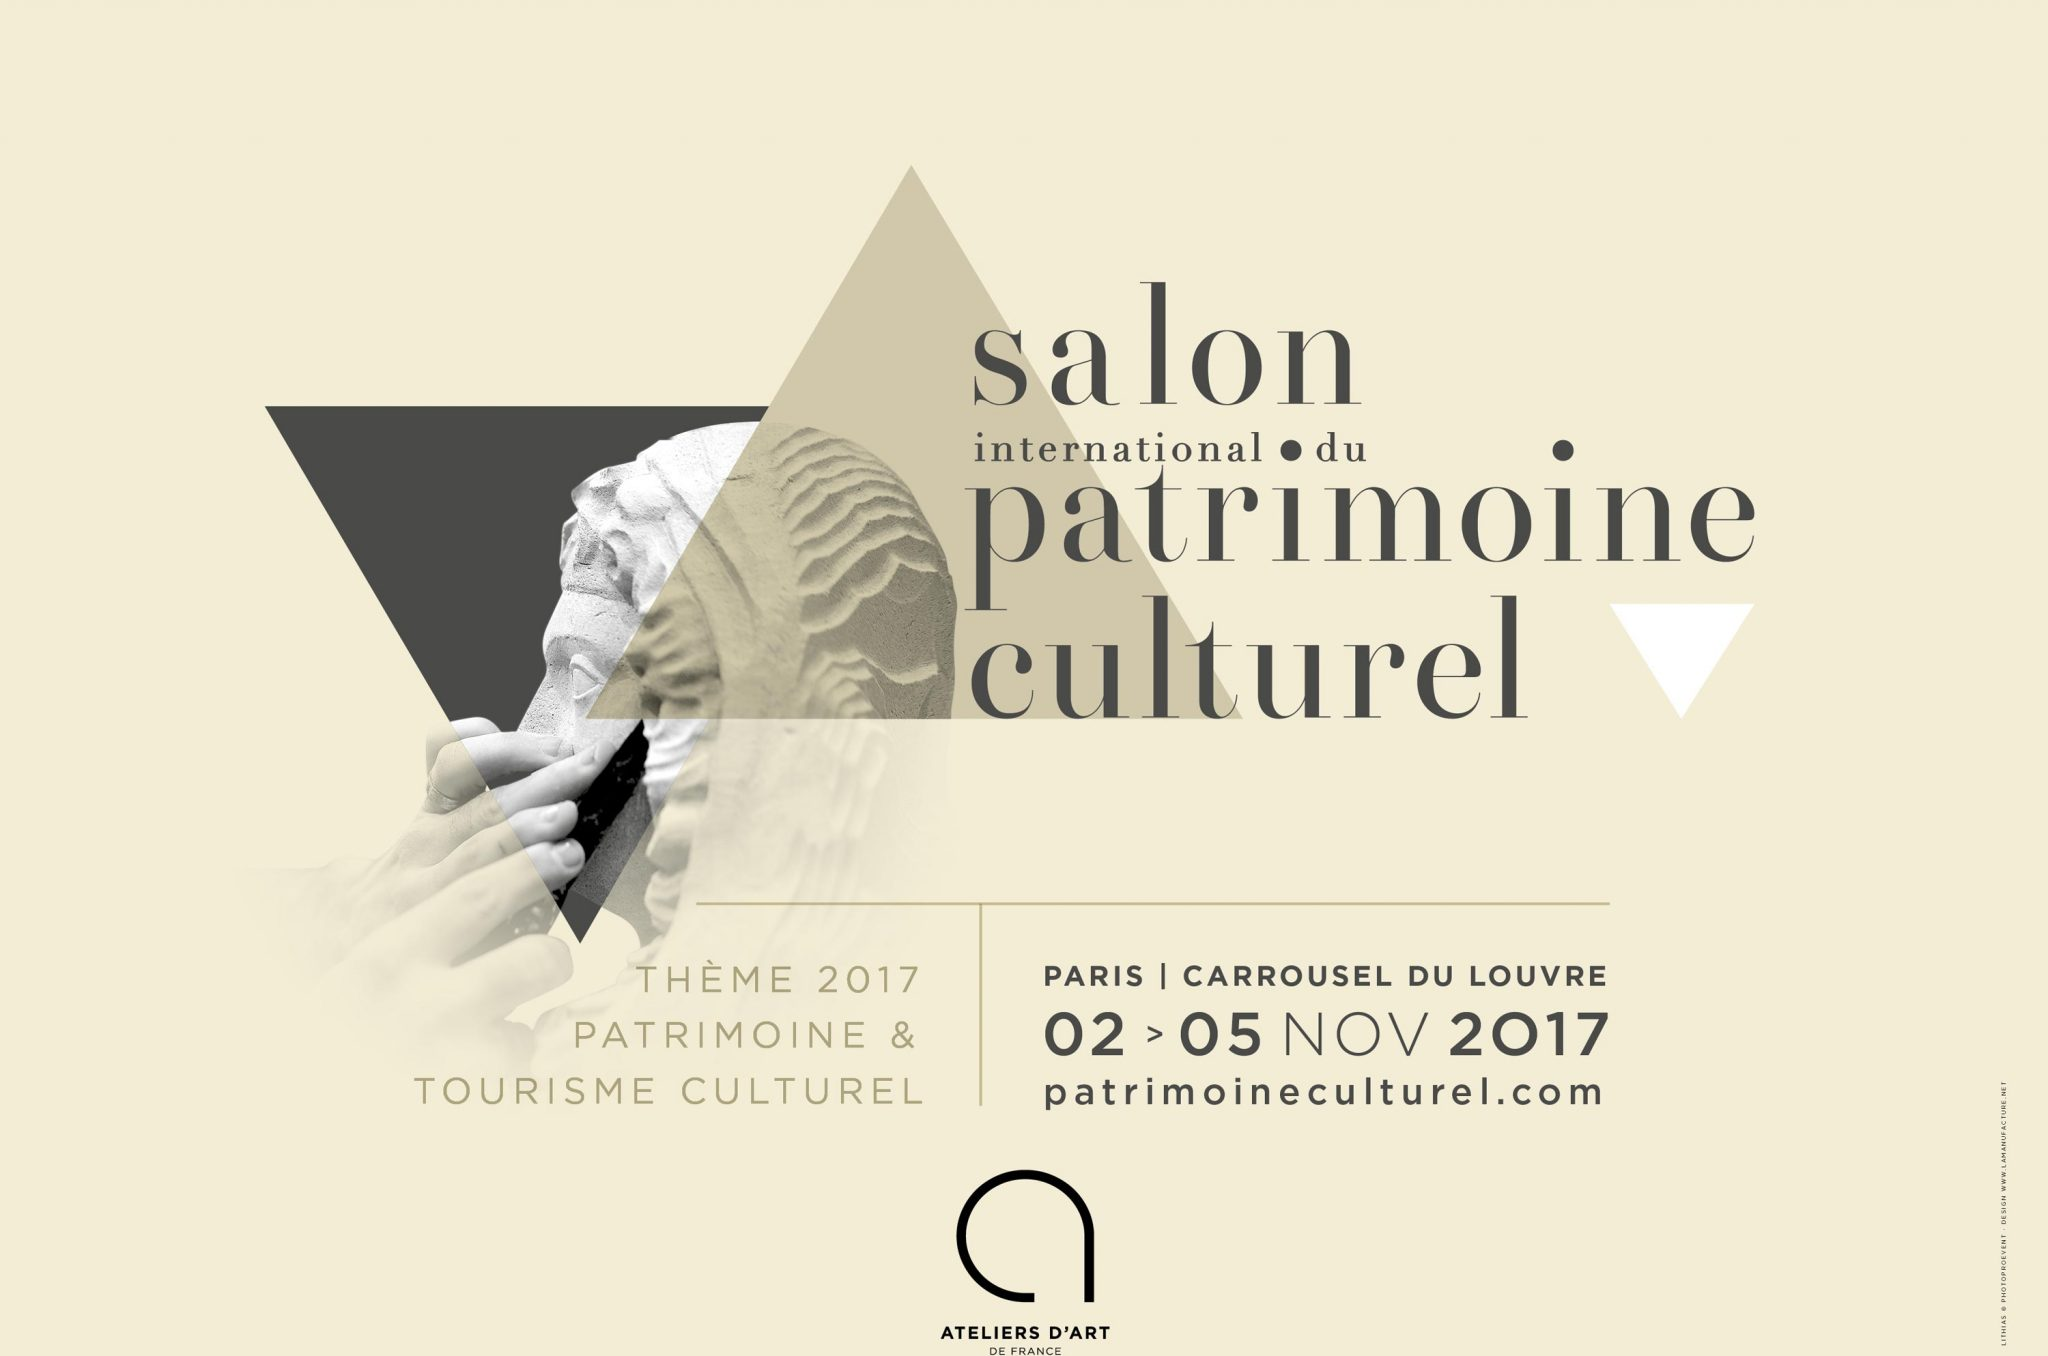 Jossefrance carreaux pierre terre for Salon du patrimoine